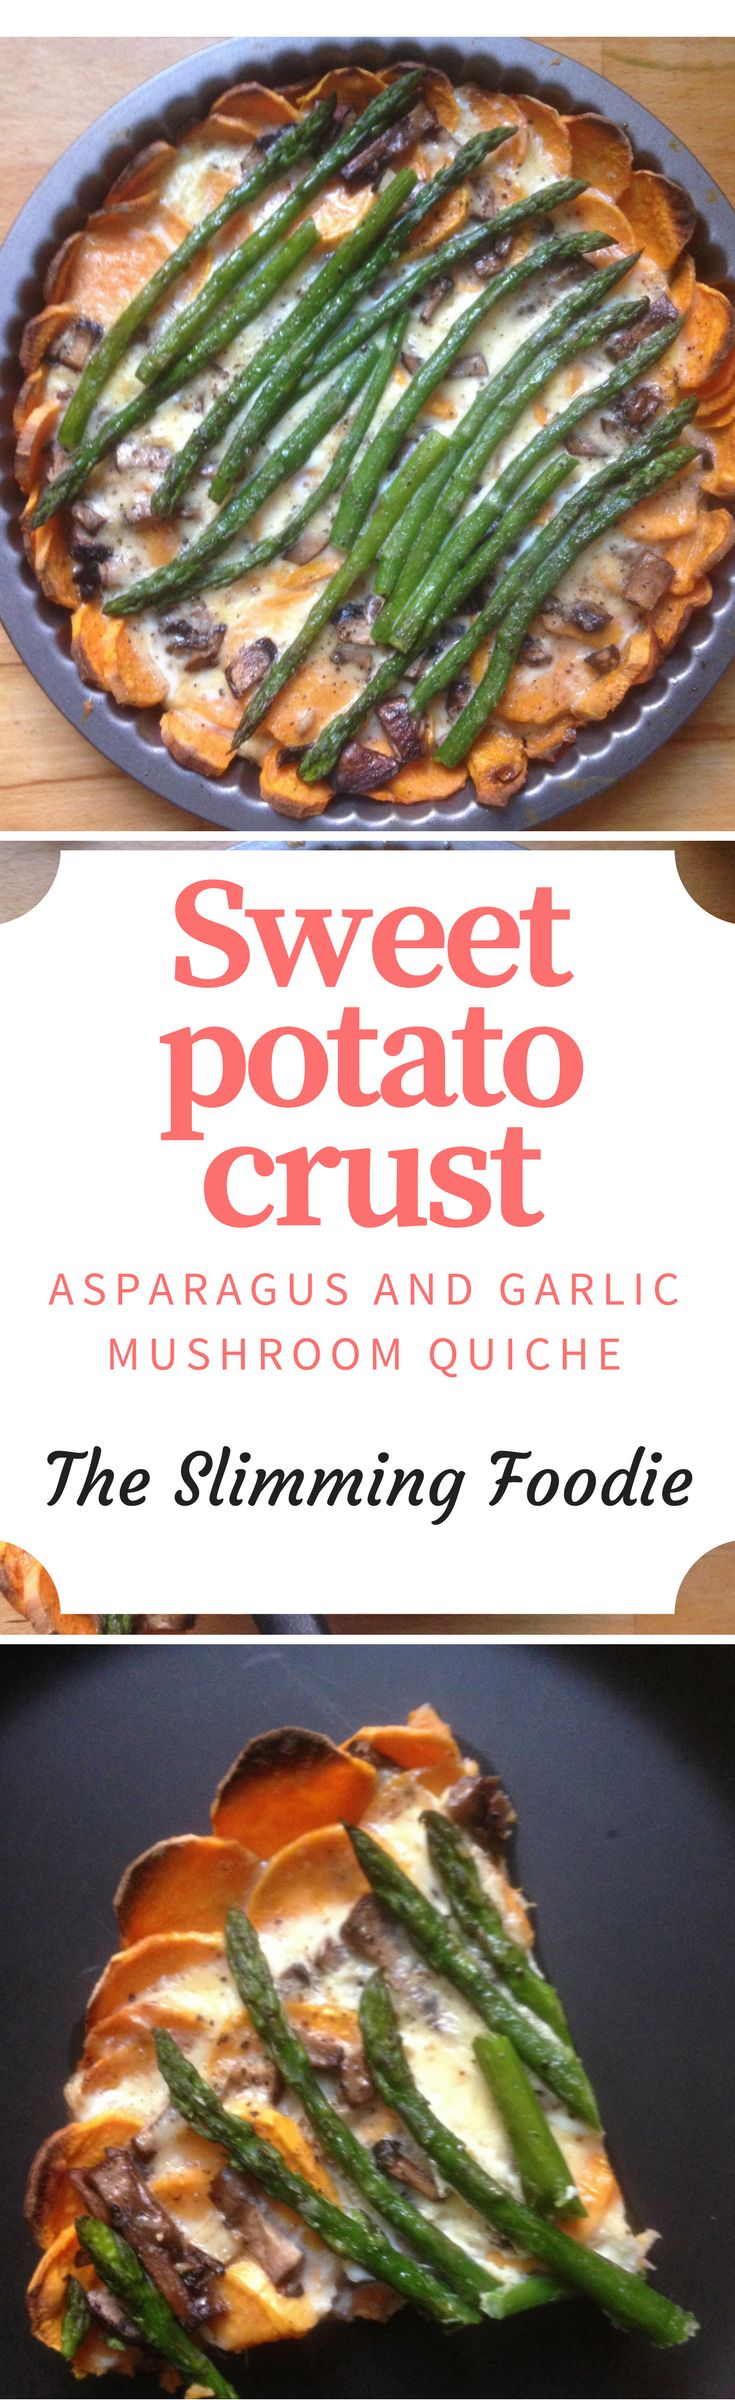 A delicious quiche recipe. The sweet potato crust creates a healthy and tasty crust which is the perfect alternative to pastry, the garlic mushrooms and asparagus a delicious filling. So healthy but such a treat!